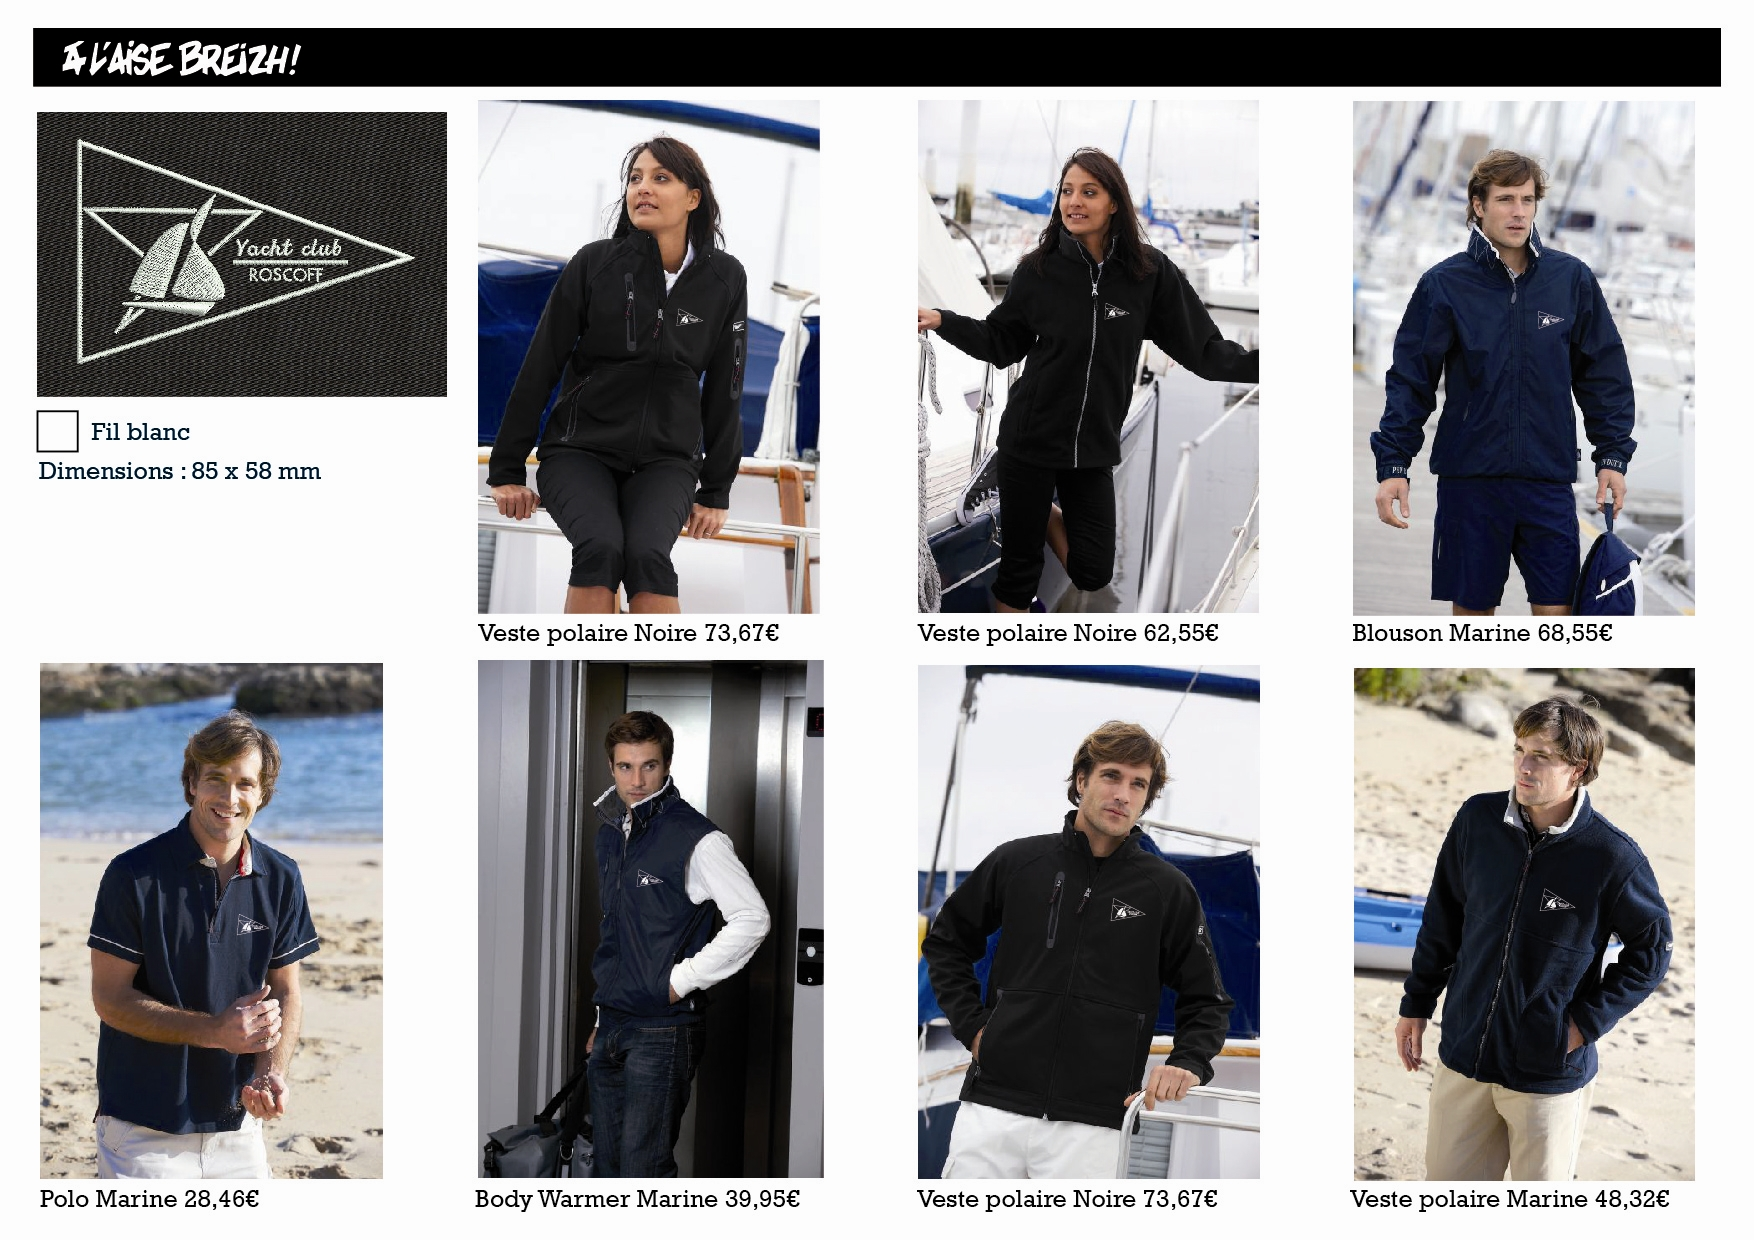 yachtclub-roscoff-01vetements.jpg